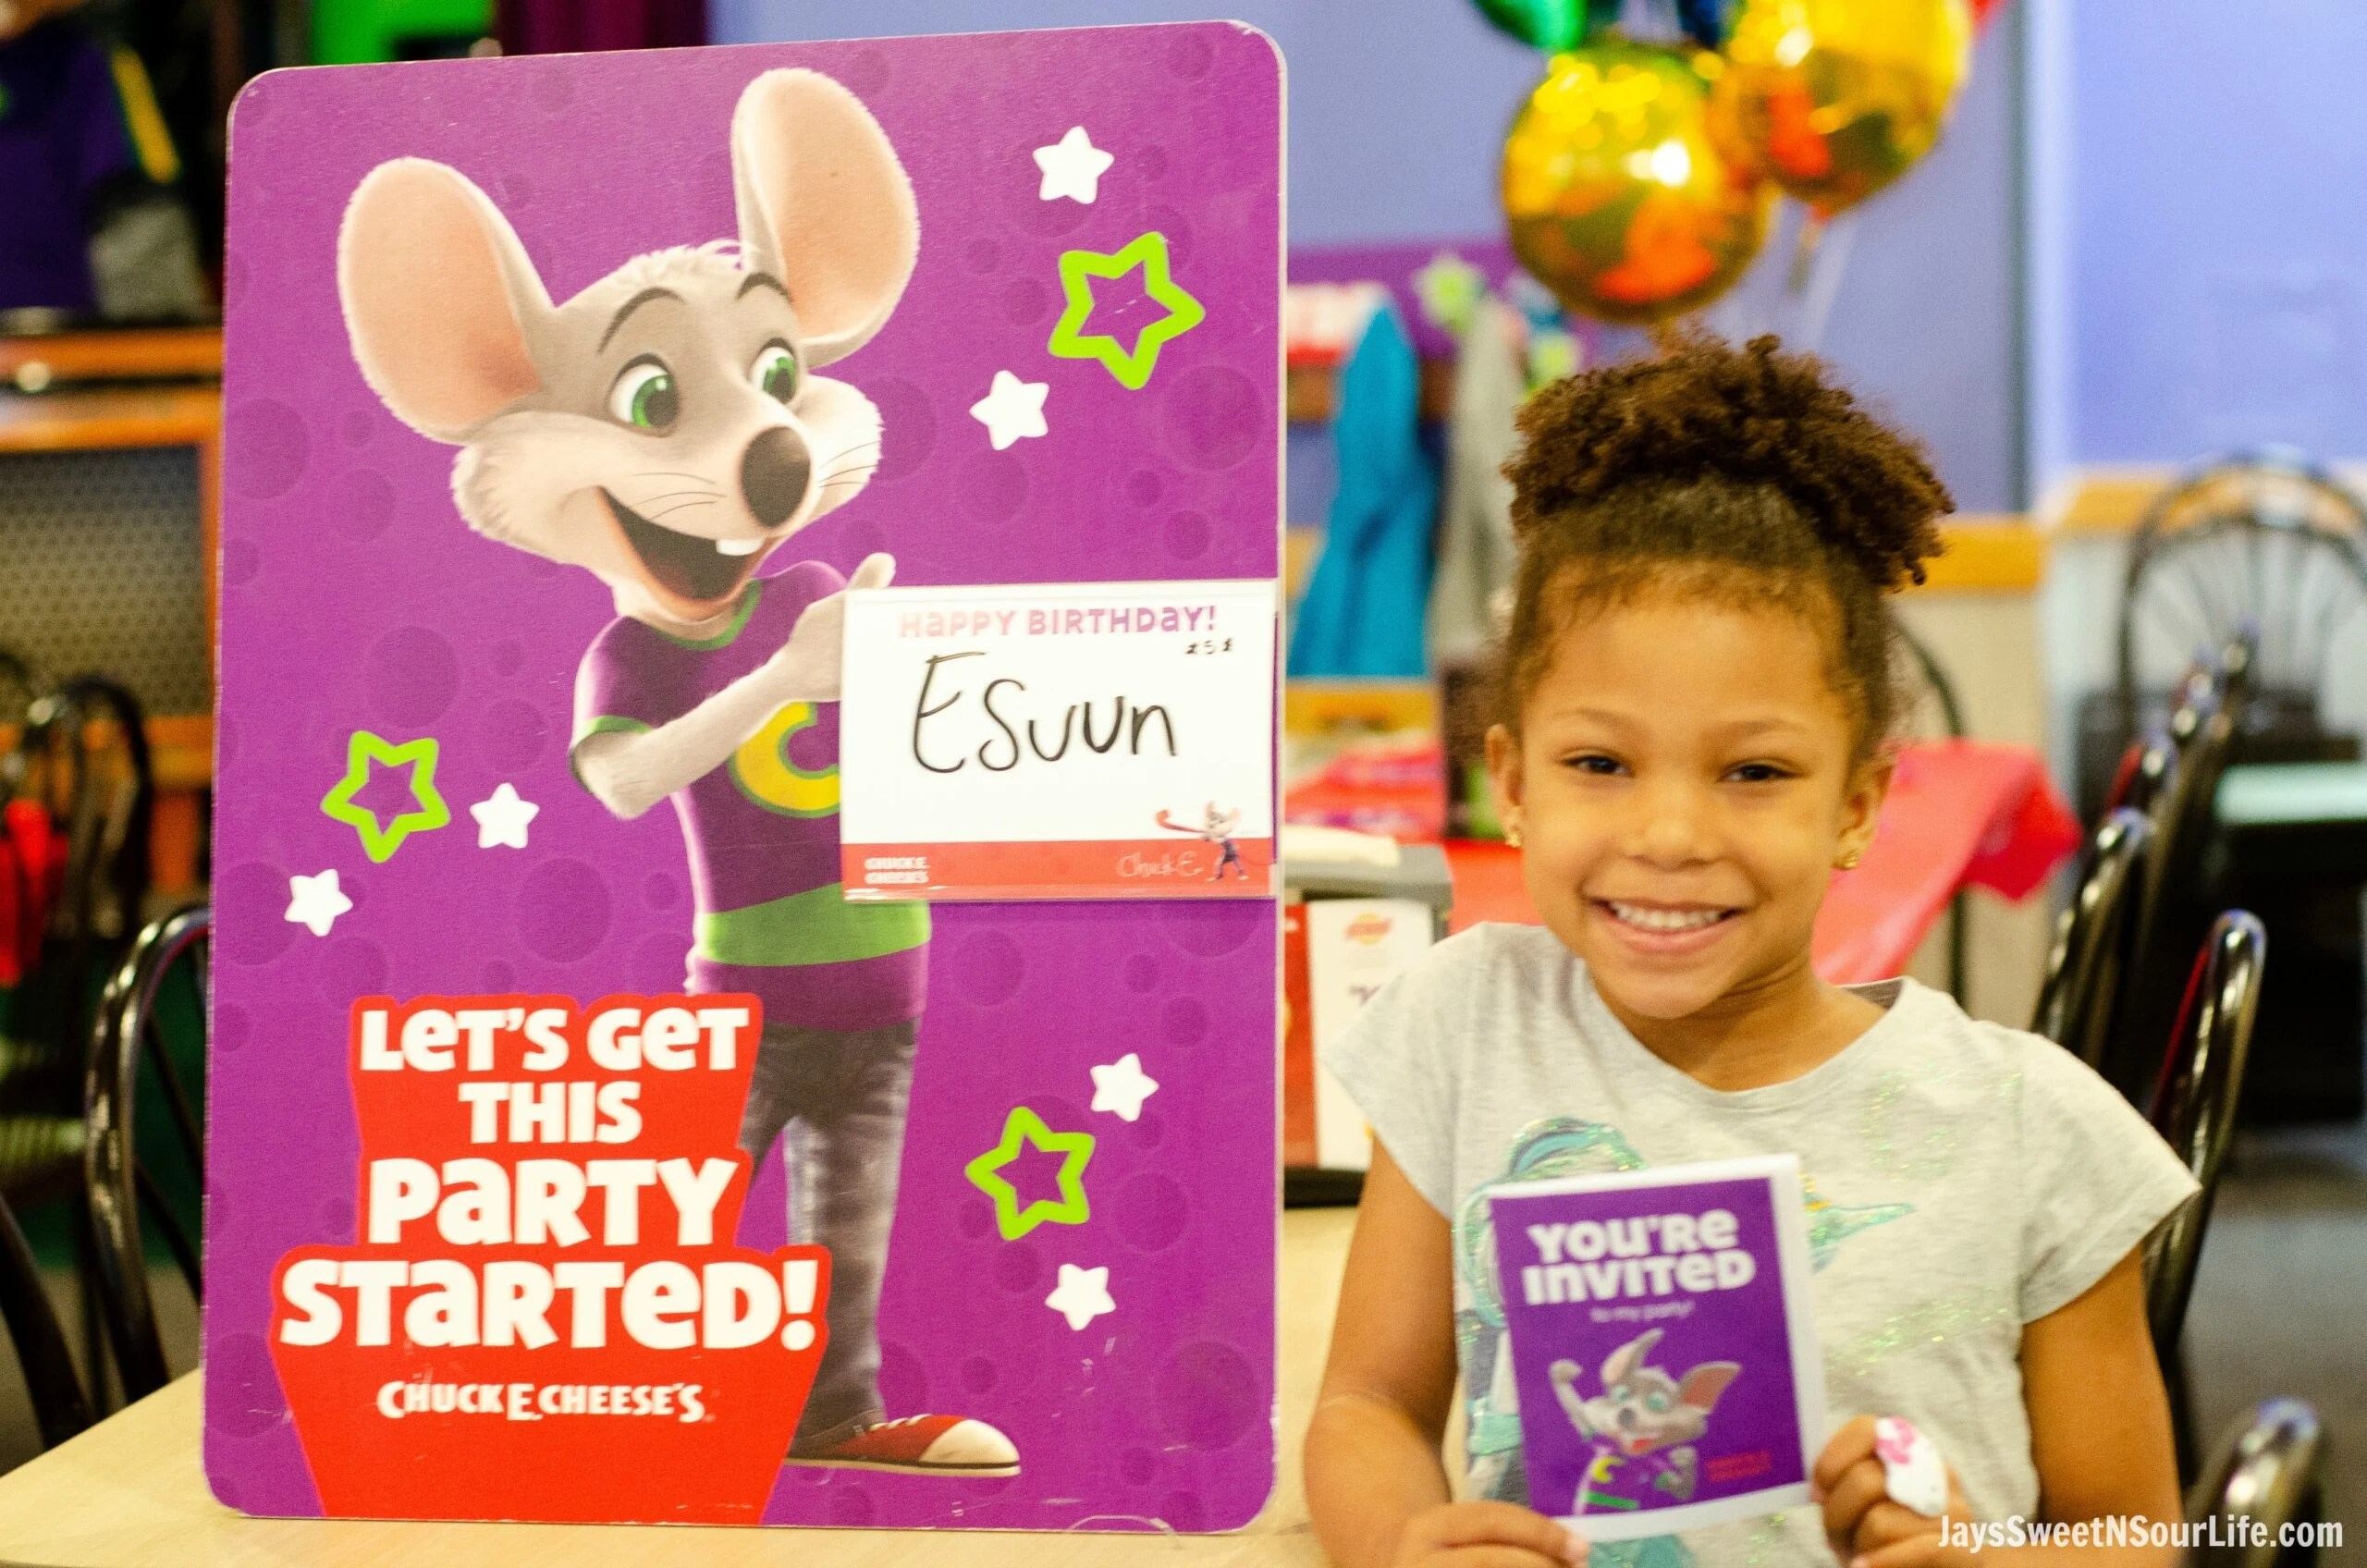 Thats Why When I Found Out They Now Offer A Chuck E Cheeses VIP Birthday Party Option Jumped At The Opportunity To Book One